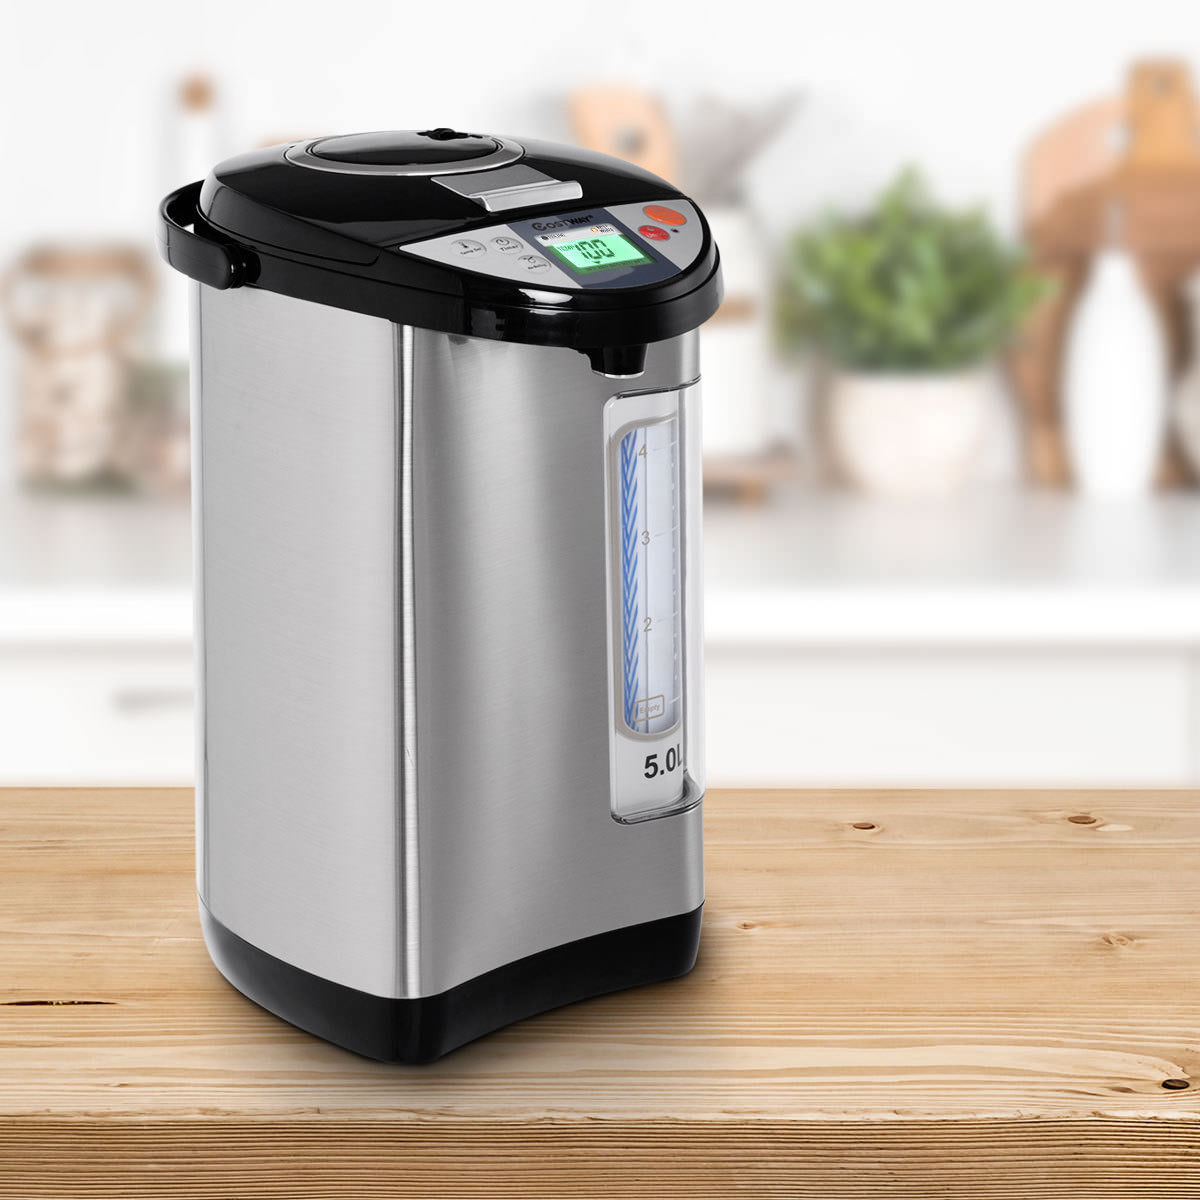 Costway 5-Liter LCD Water Boiler and Warmer Electric Hot Pot Kettle ...